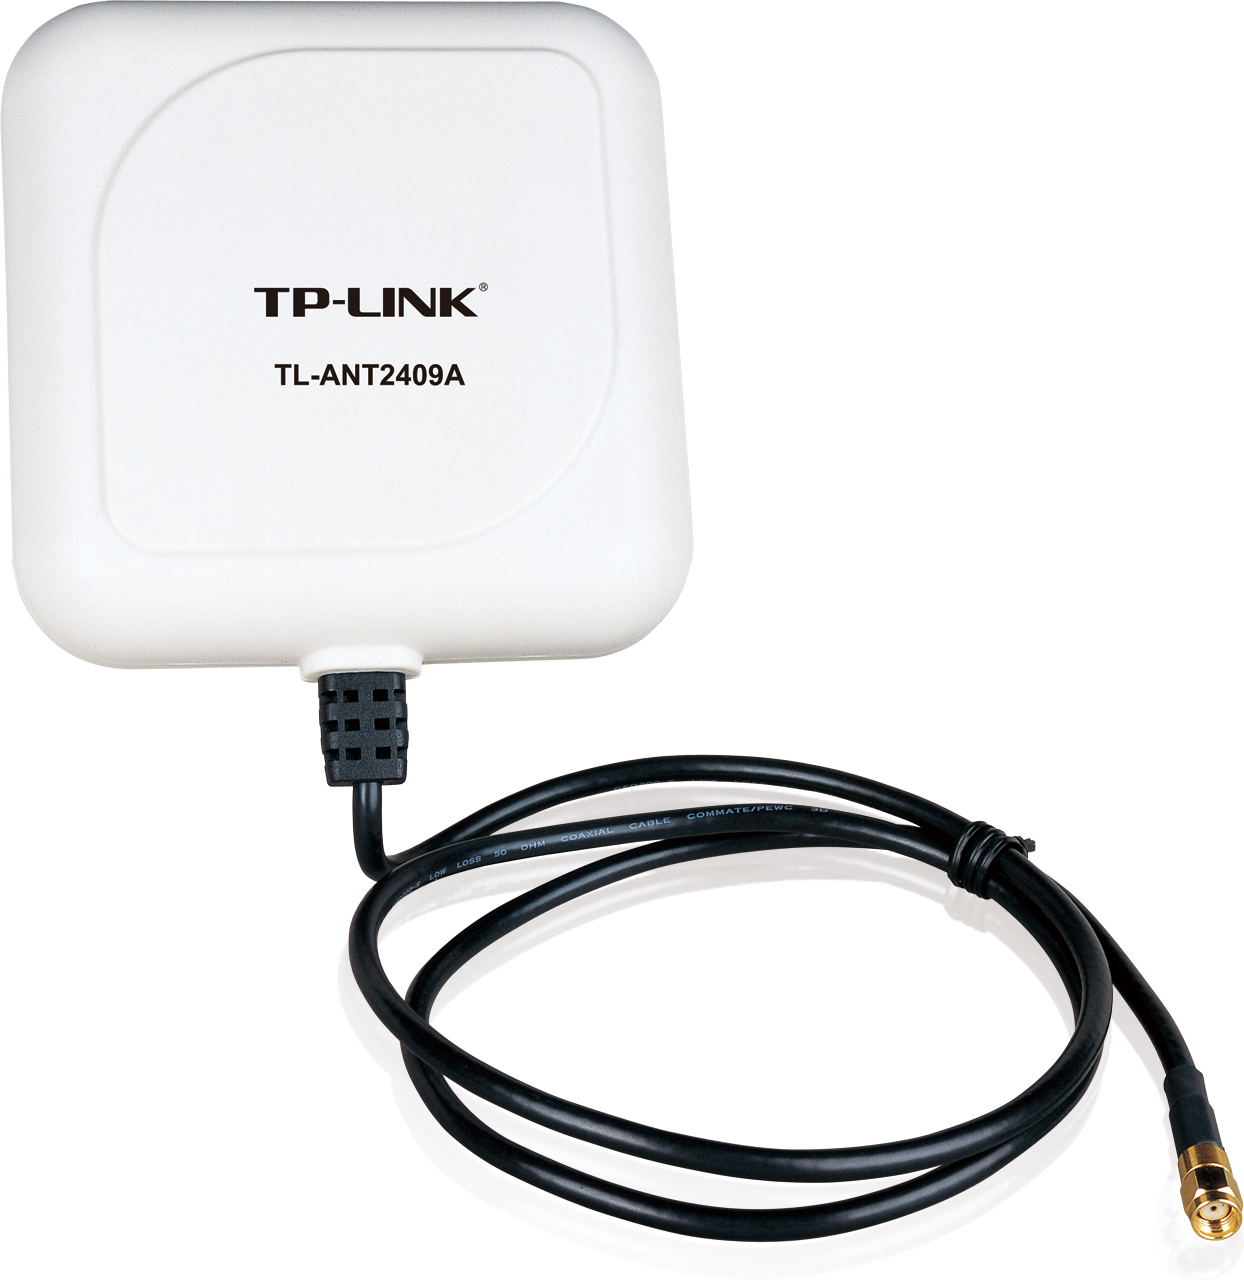 TP-LINK TL-ANT2409A antena 9dBi 2,4GHz